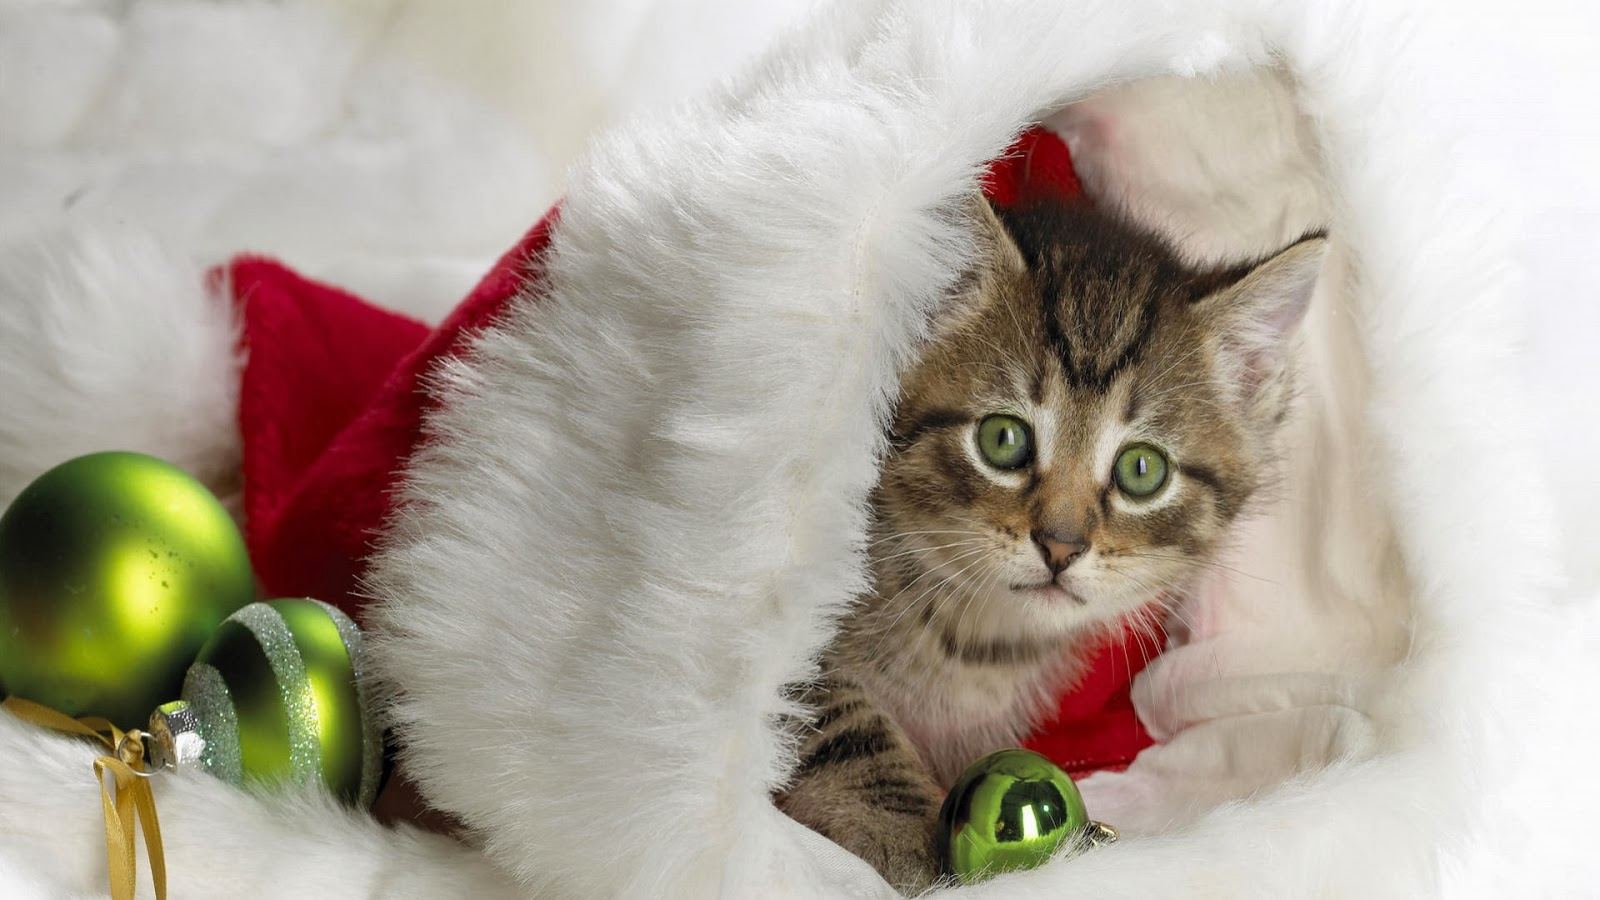 Christmas gift wallpapers and make this Cat Christmas gift wallpapers 1600x900